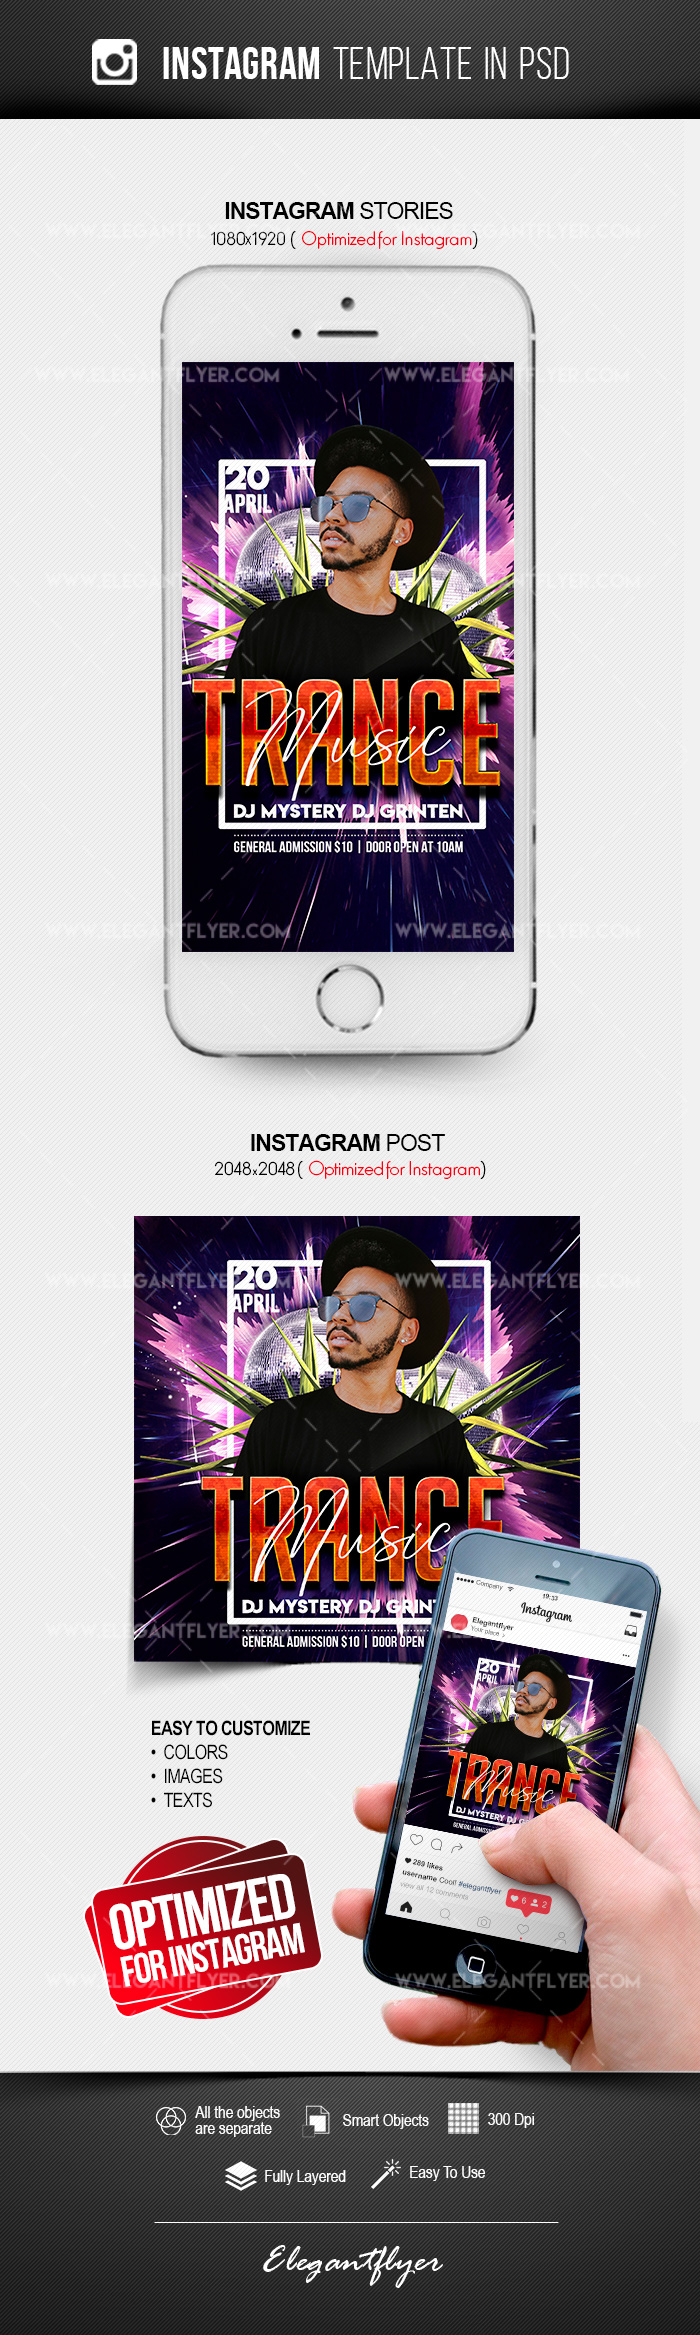 Trance Music – Free Instagram Stories Template in PSD + Post Templates